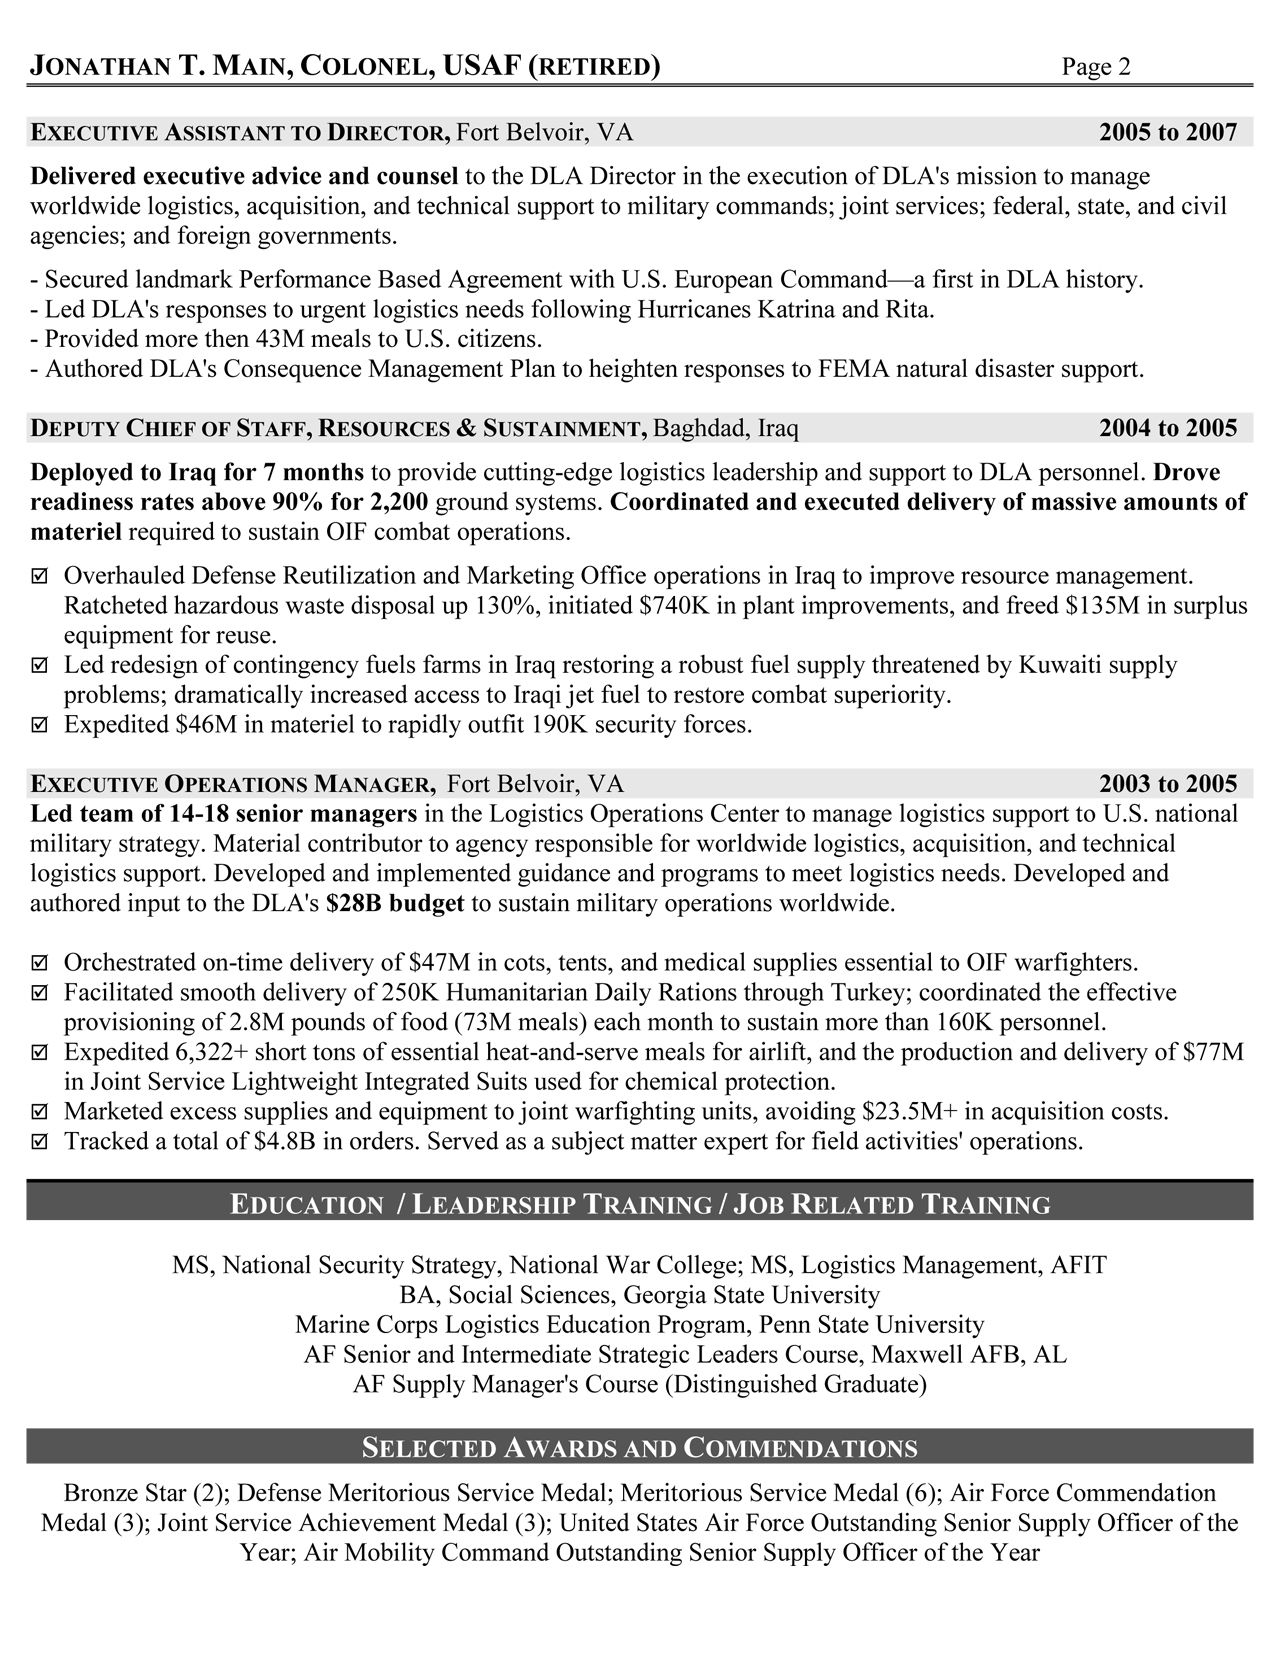 Resume Examples Uiuc | Resume Examples | Pinterest | Resume examples ...